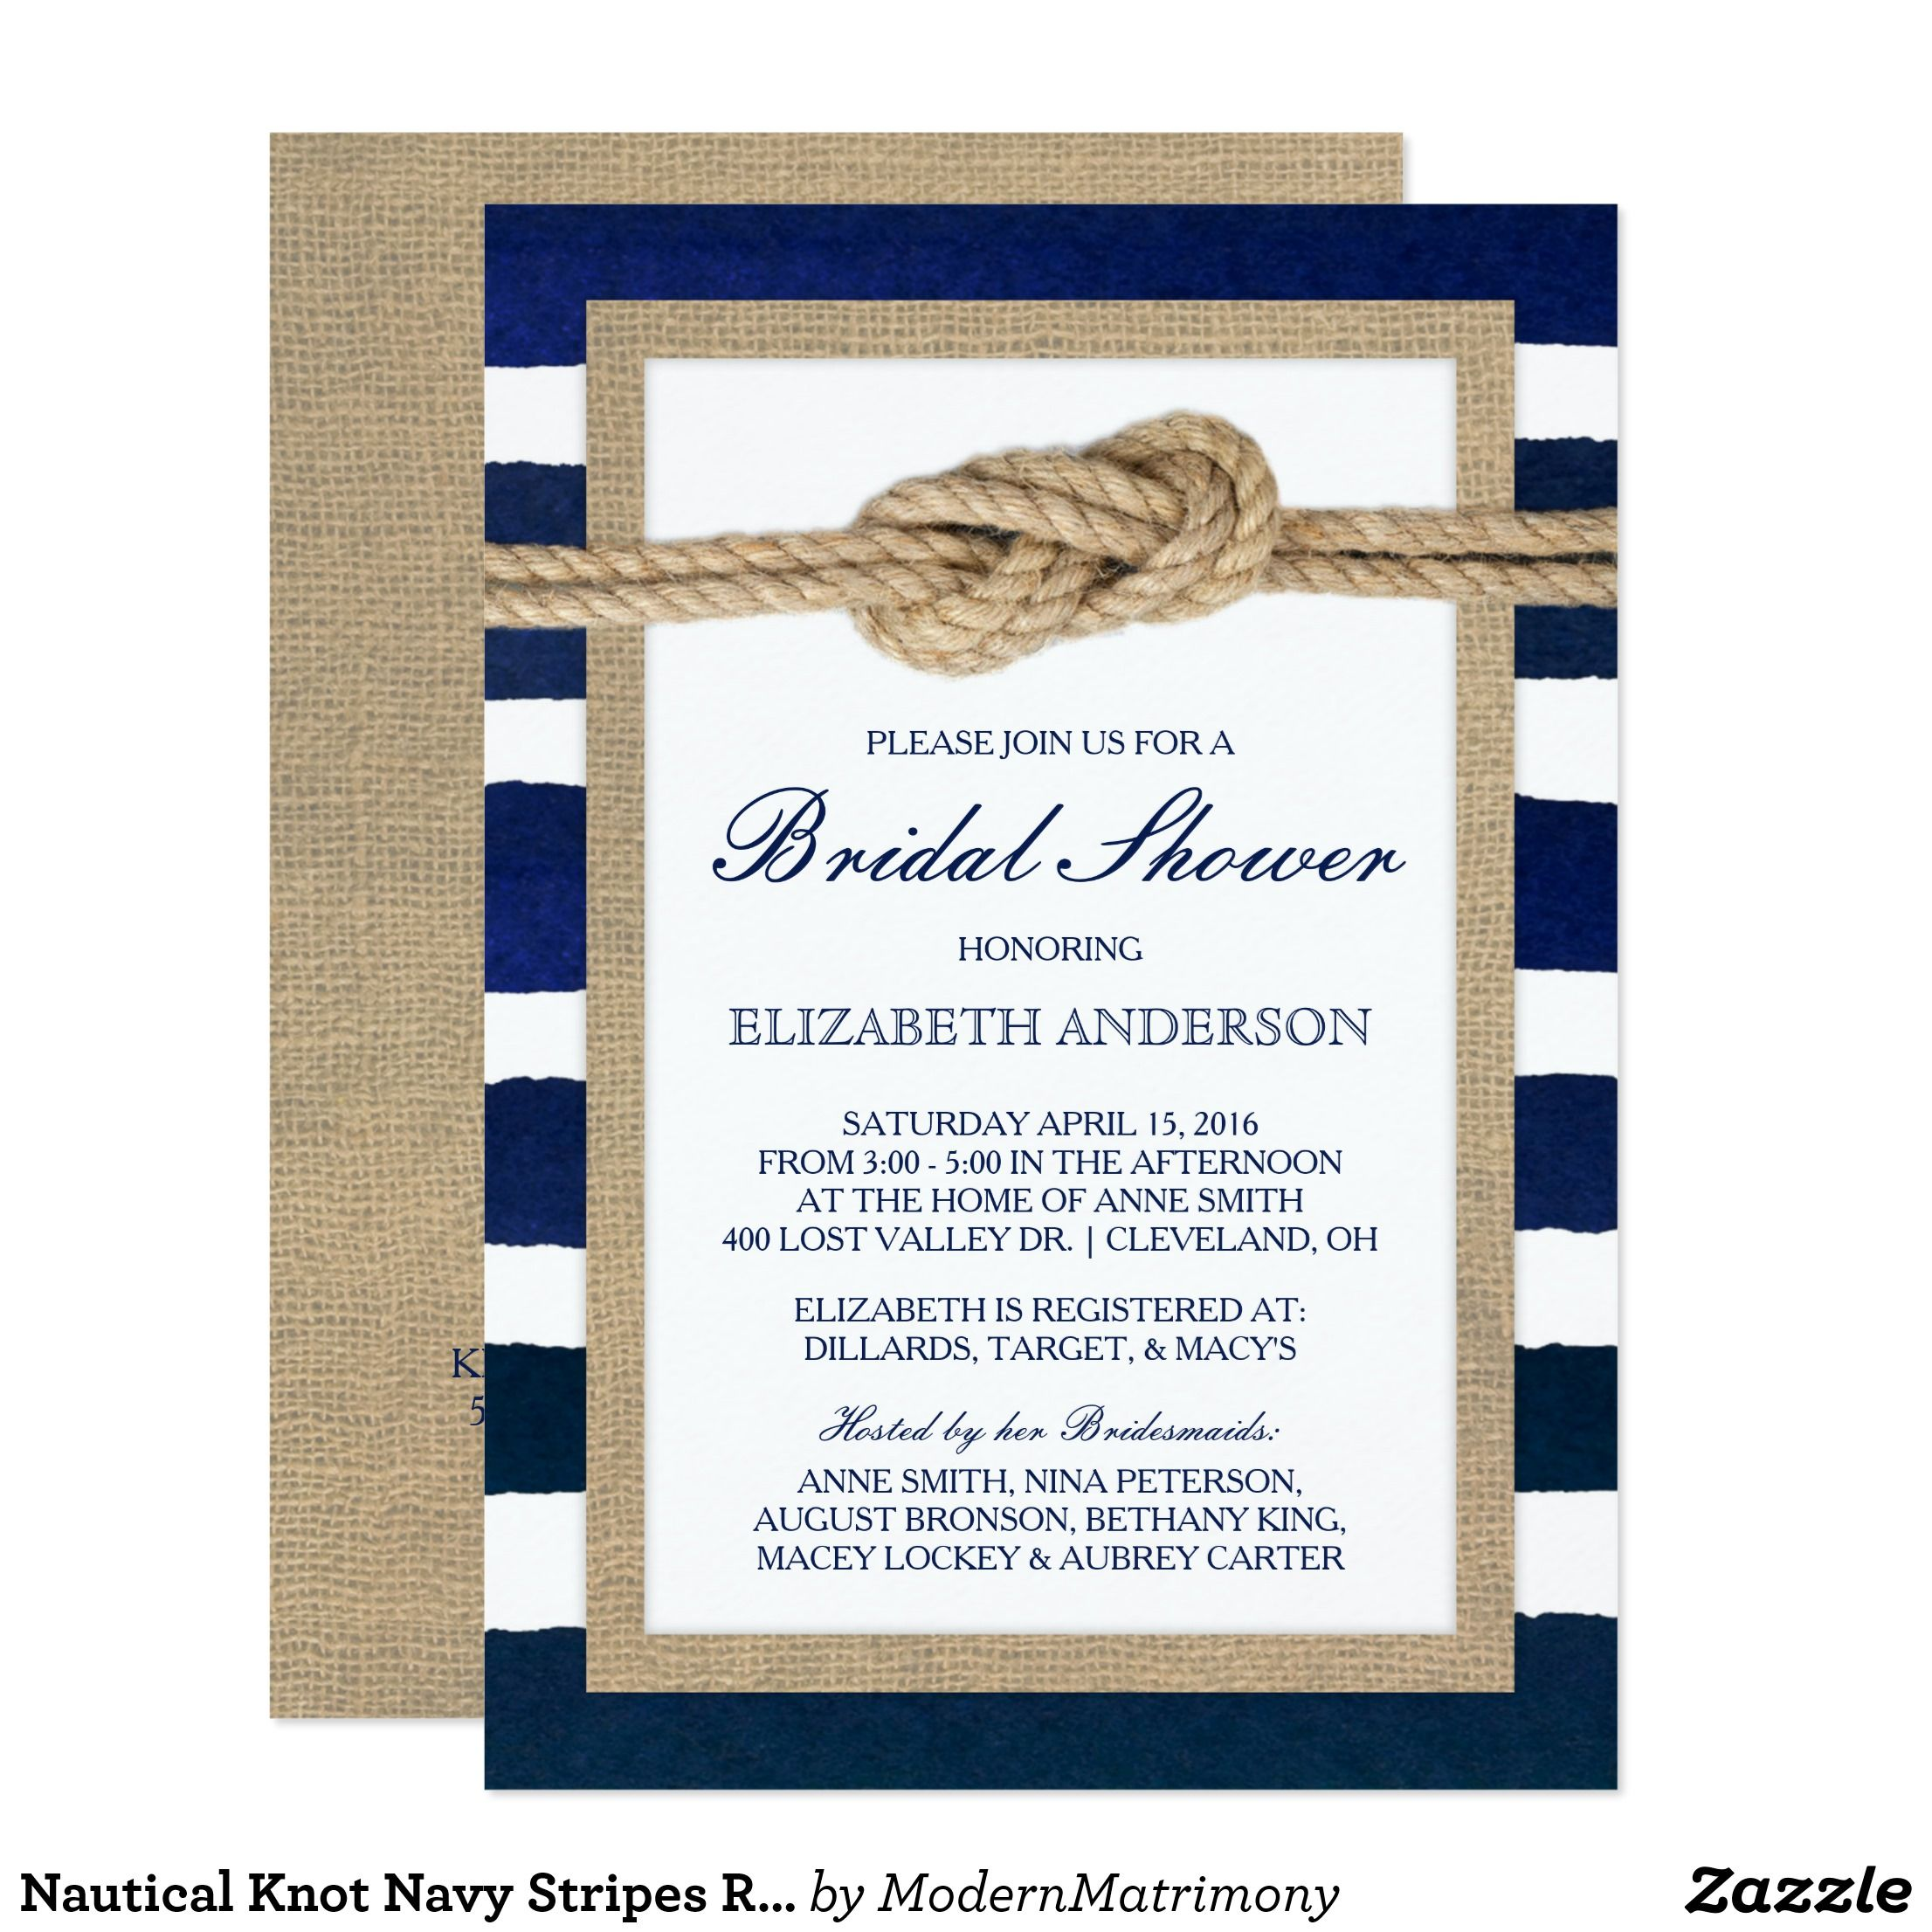 Nautical Knot Navy Stripes Rustic Bridal Shower Card Rustic Bridal